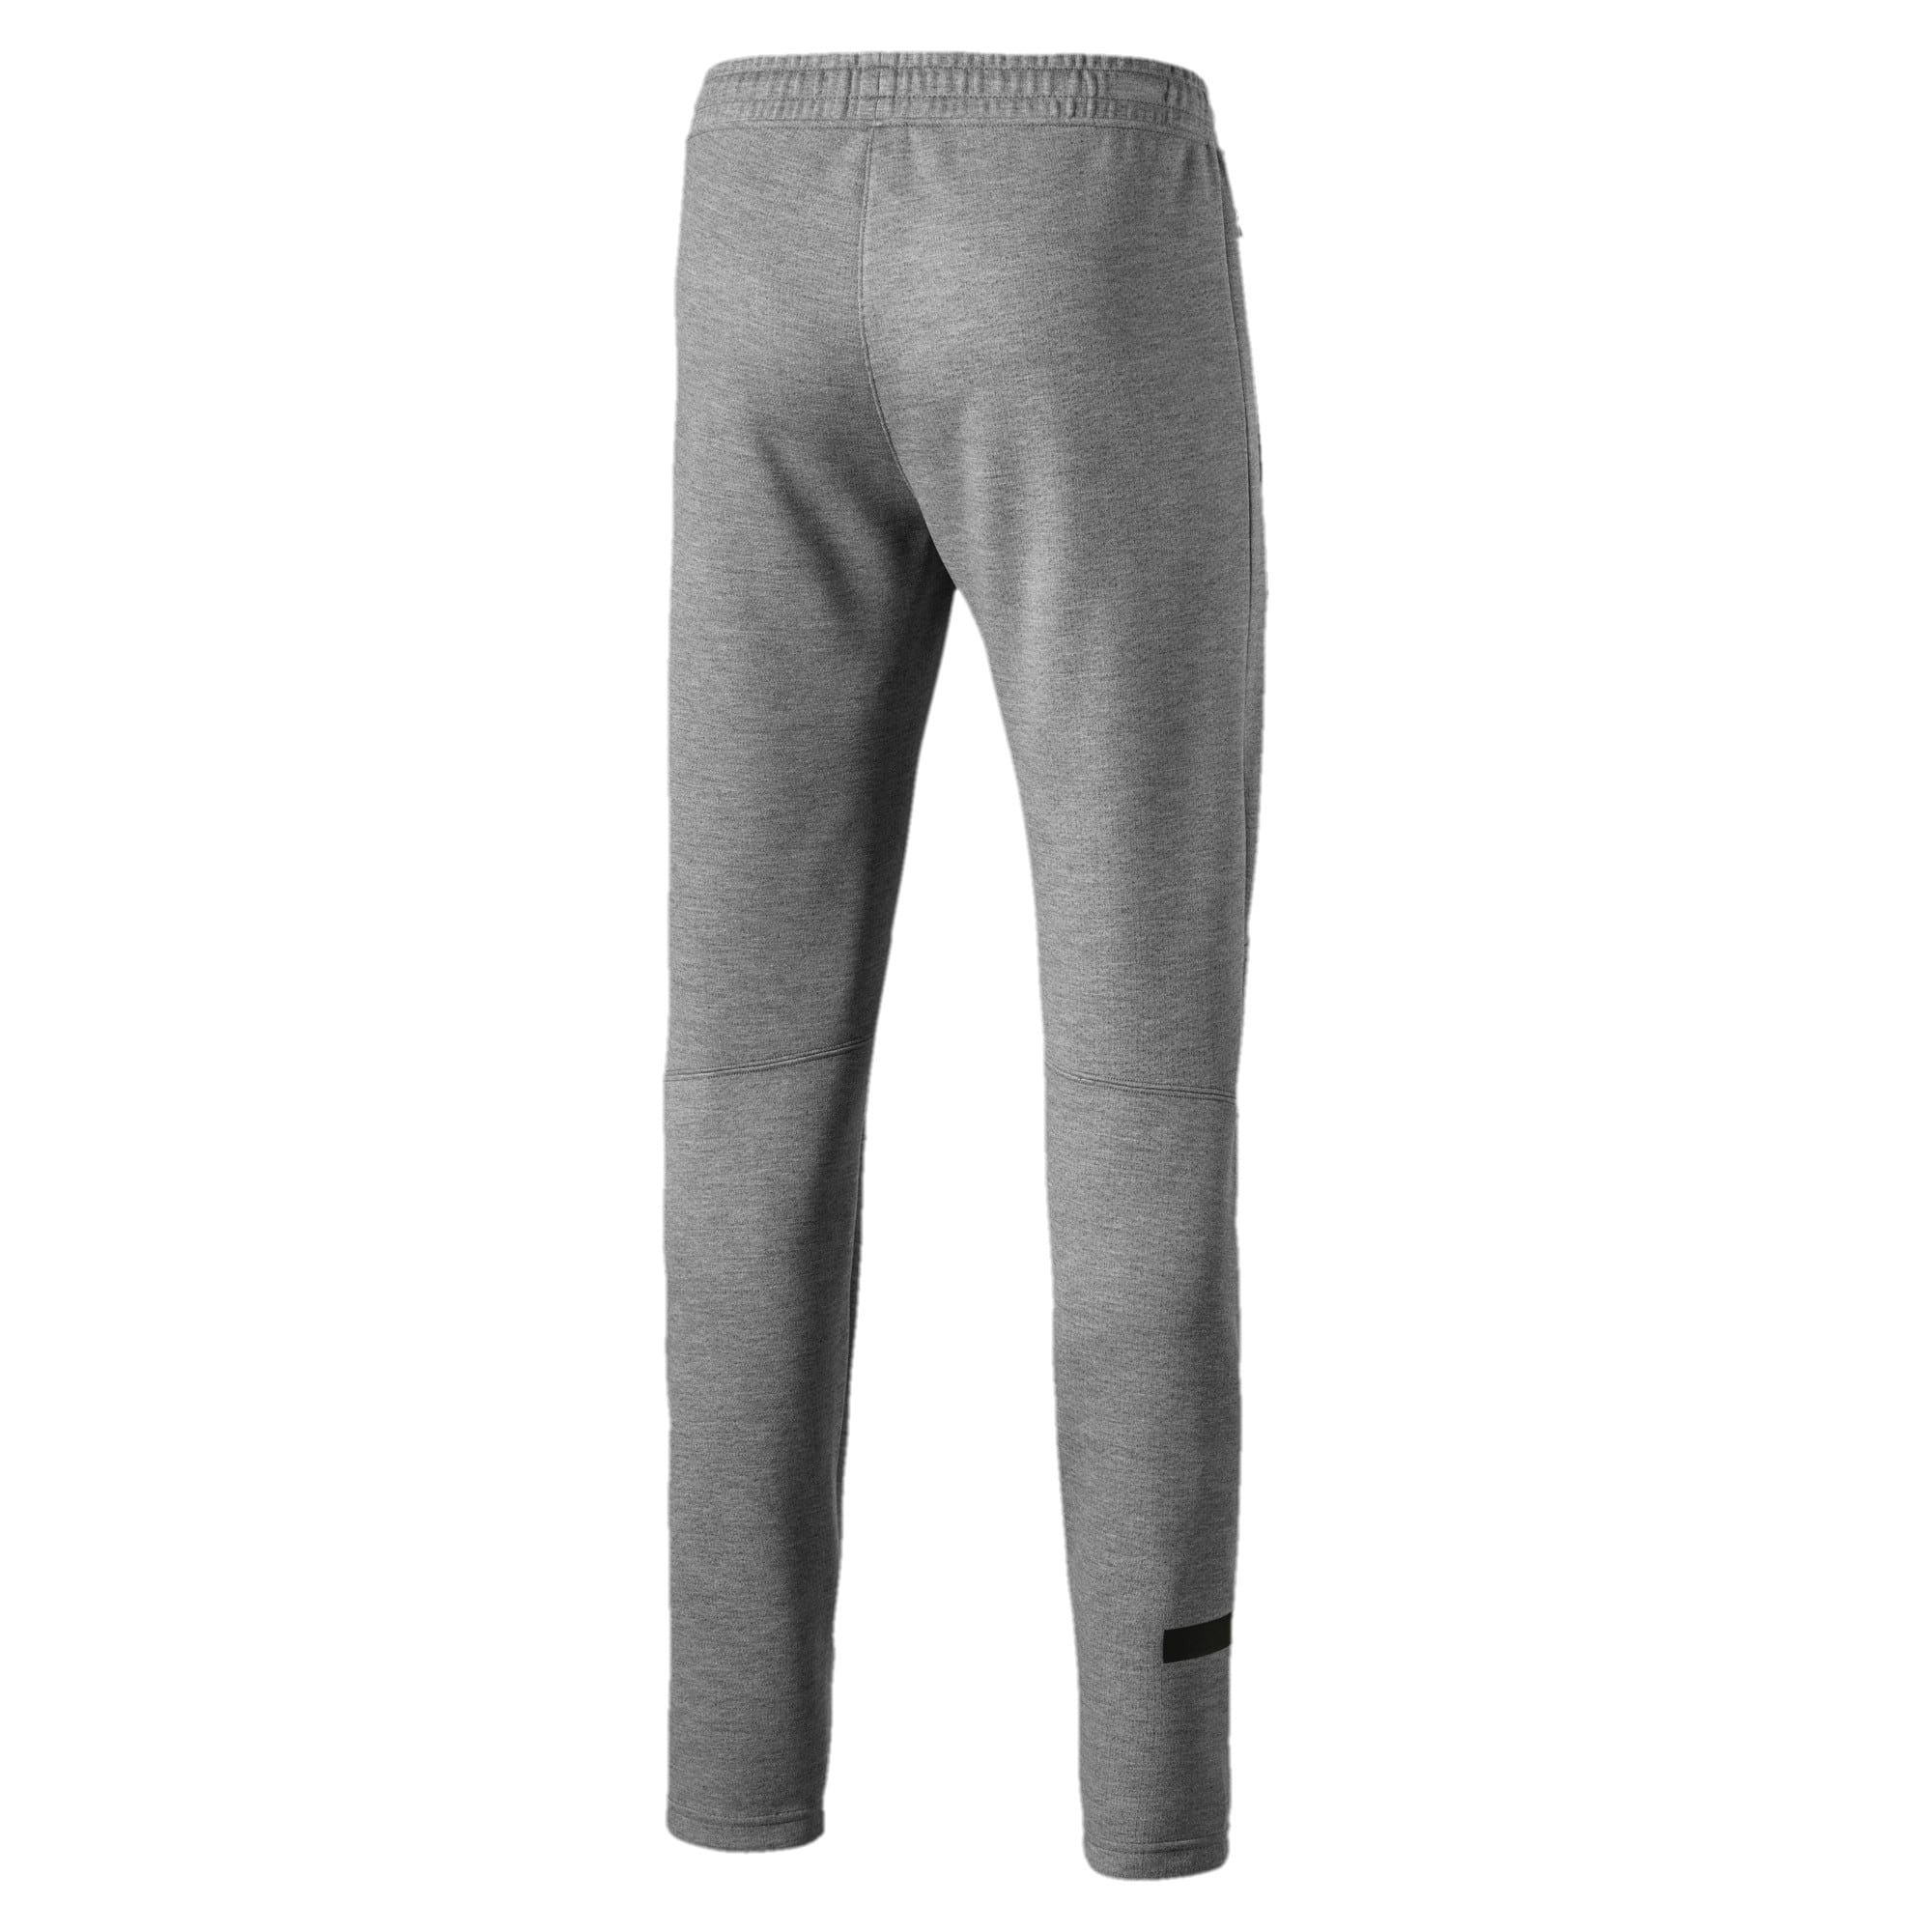 Mercedes AMG Petronas Knitted Men's Sweatpants, Medium Gray Heather, large